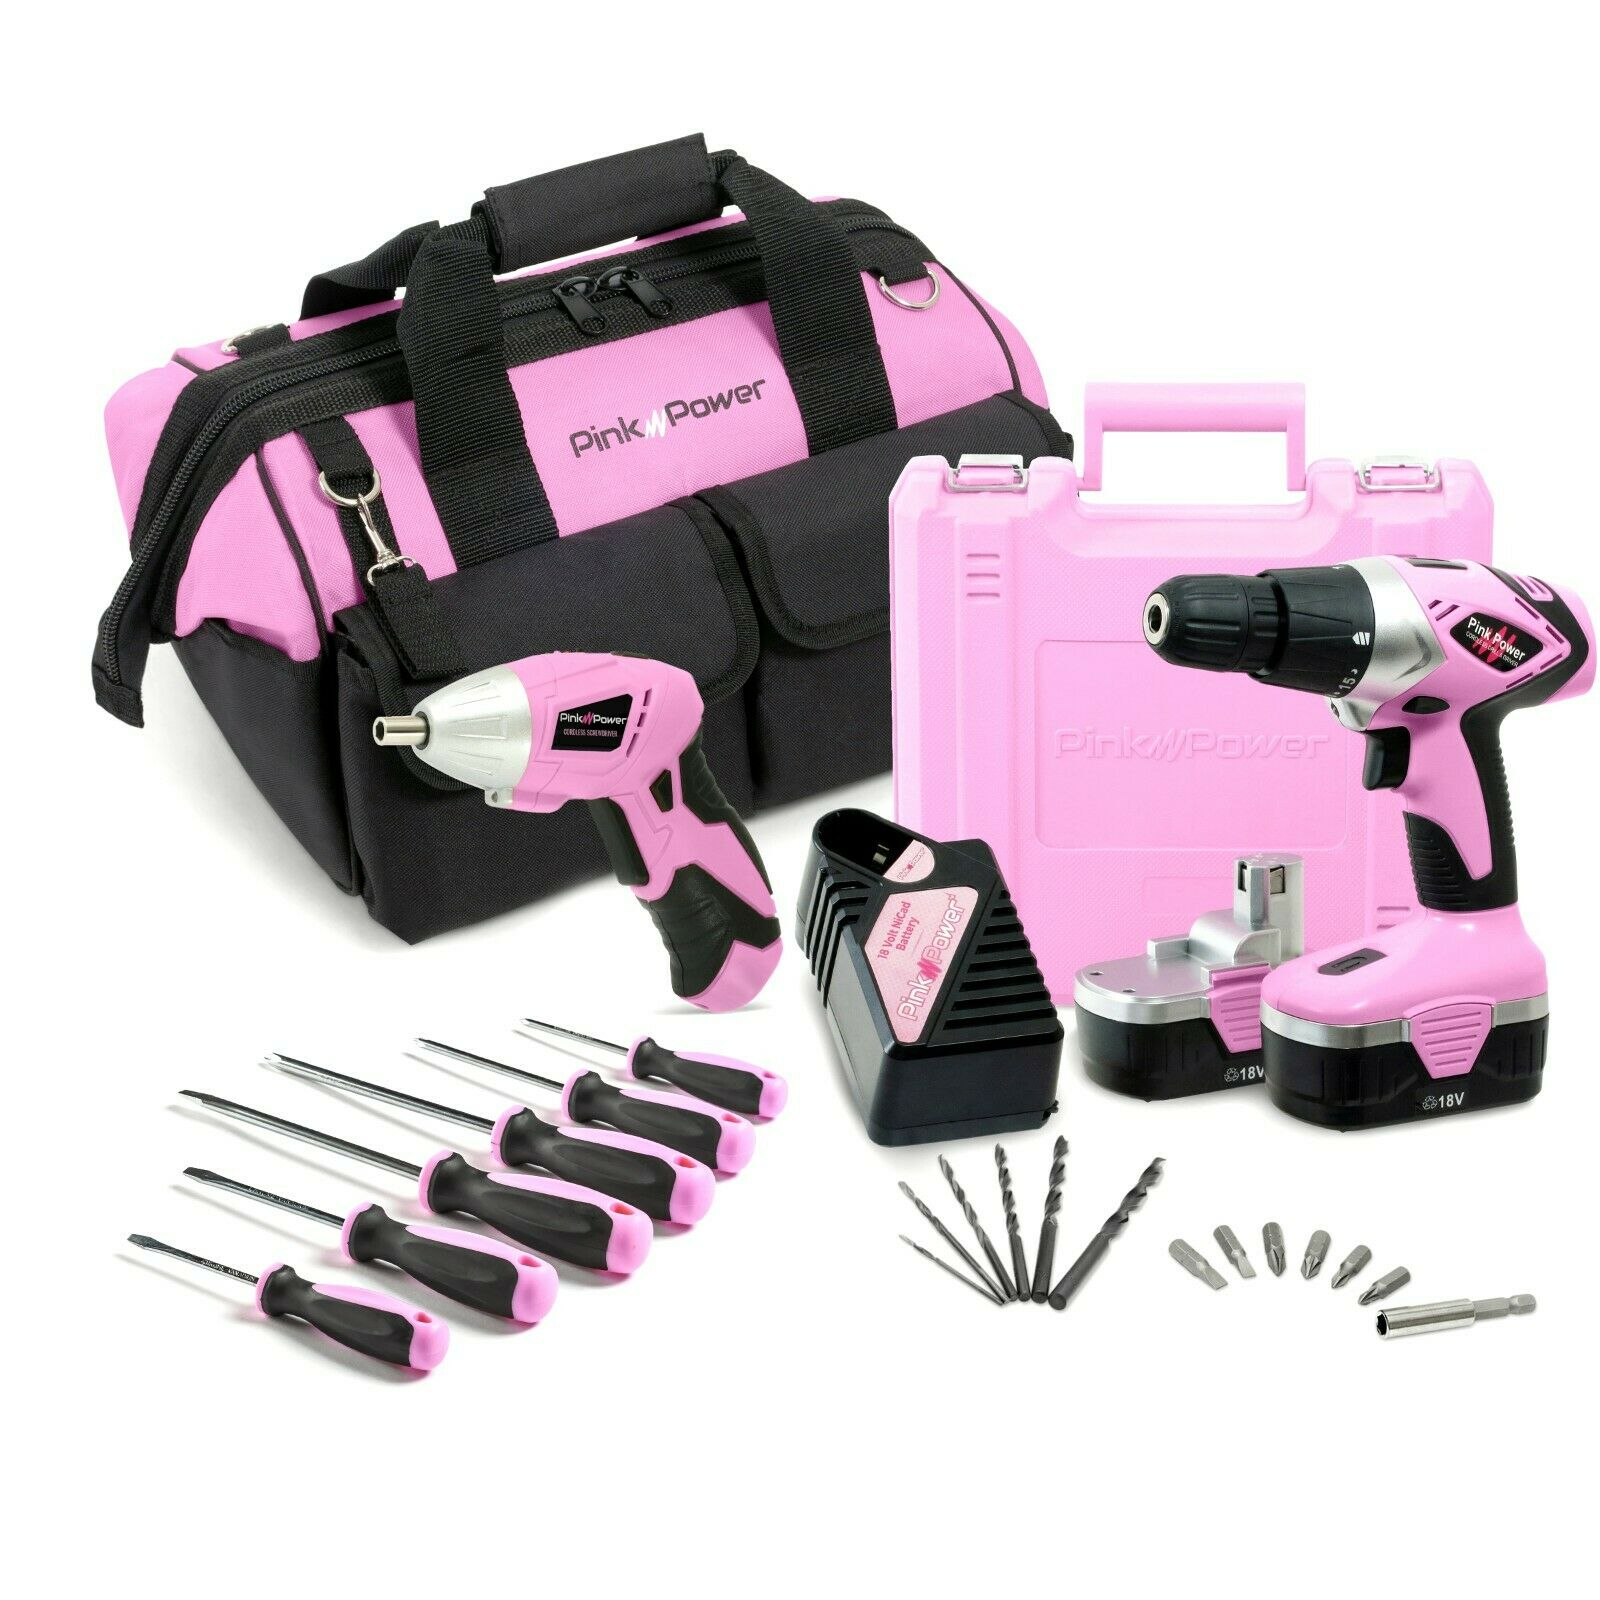 Pink Power 18V Cordless Drill Driver & Electric Screwdriver